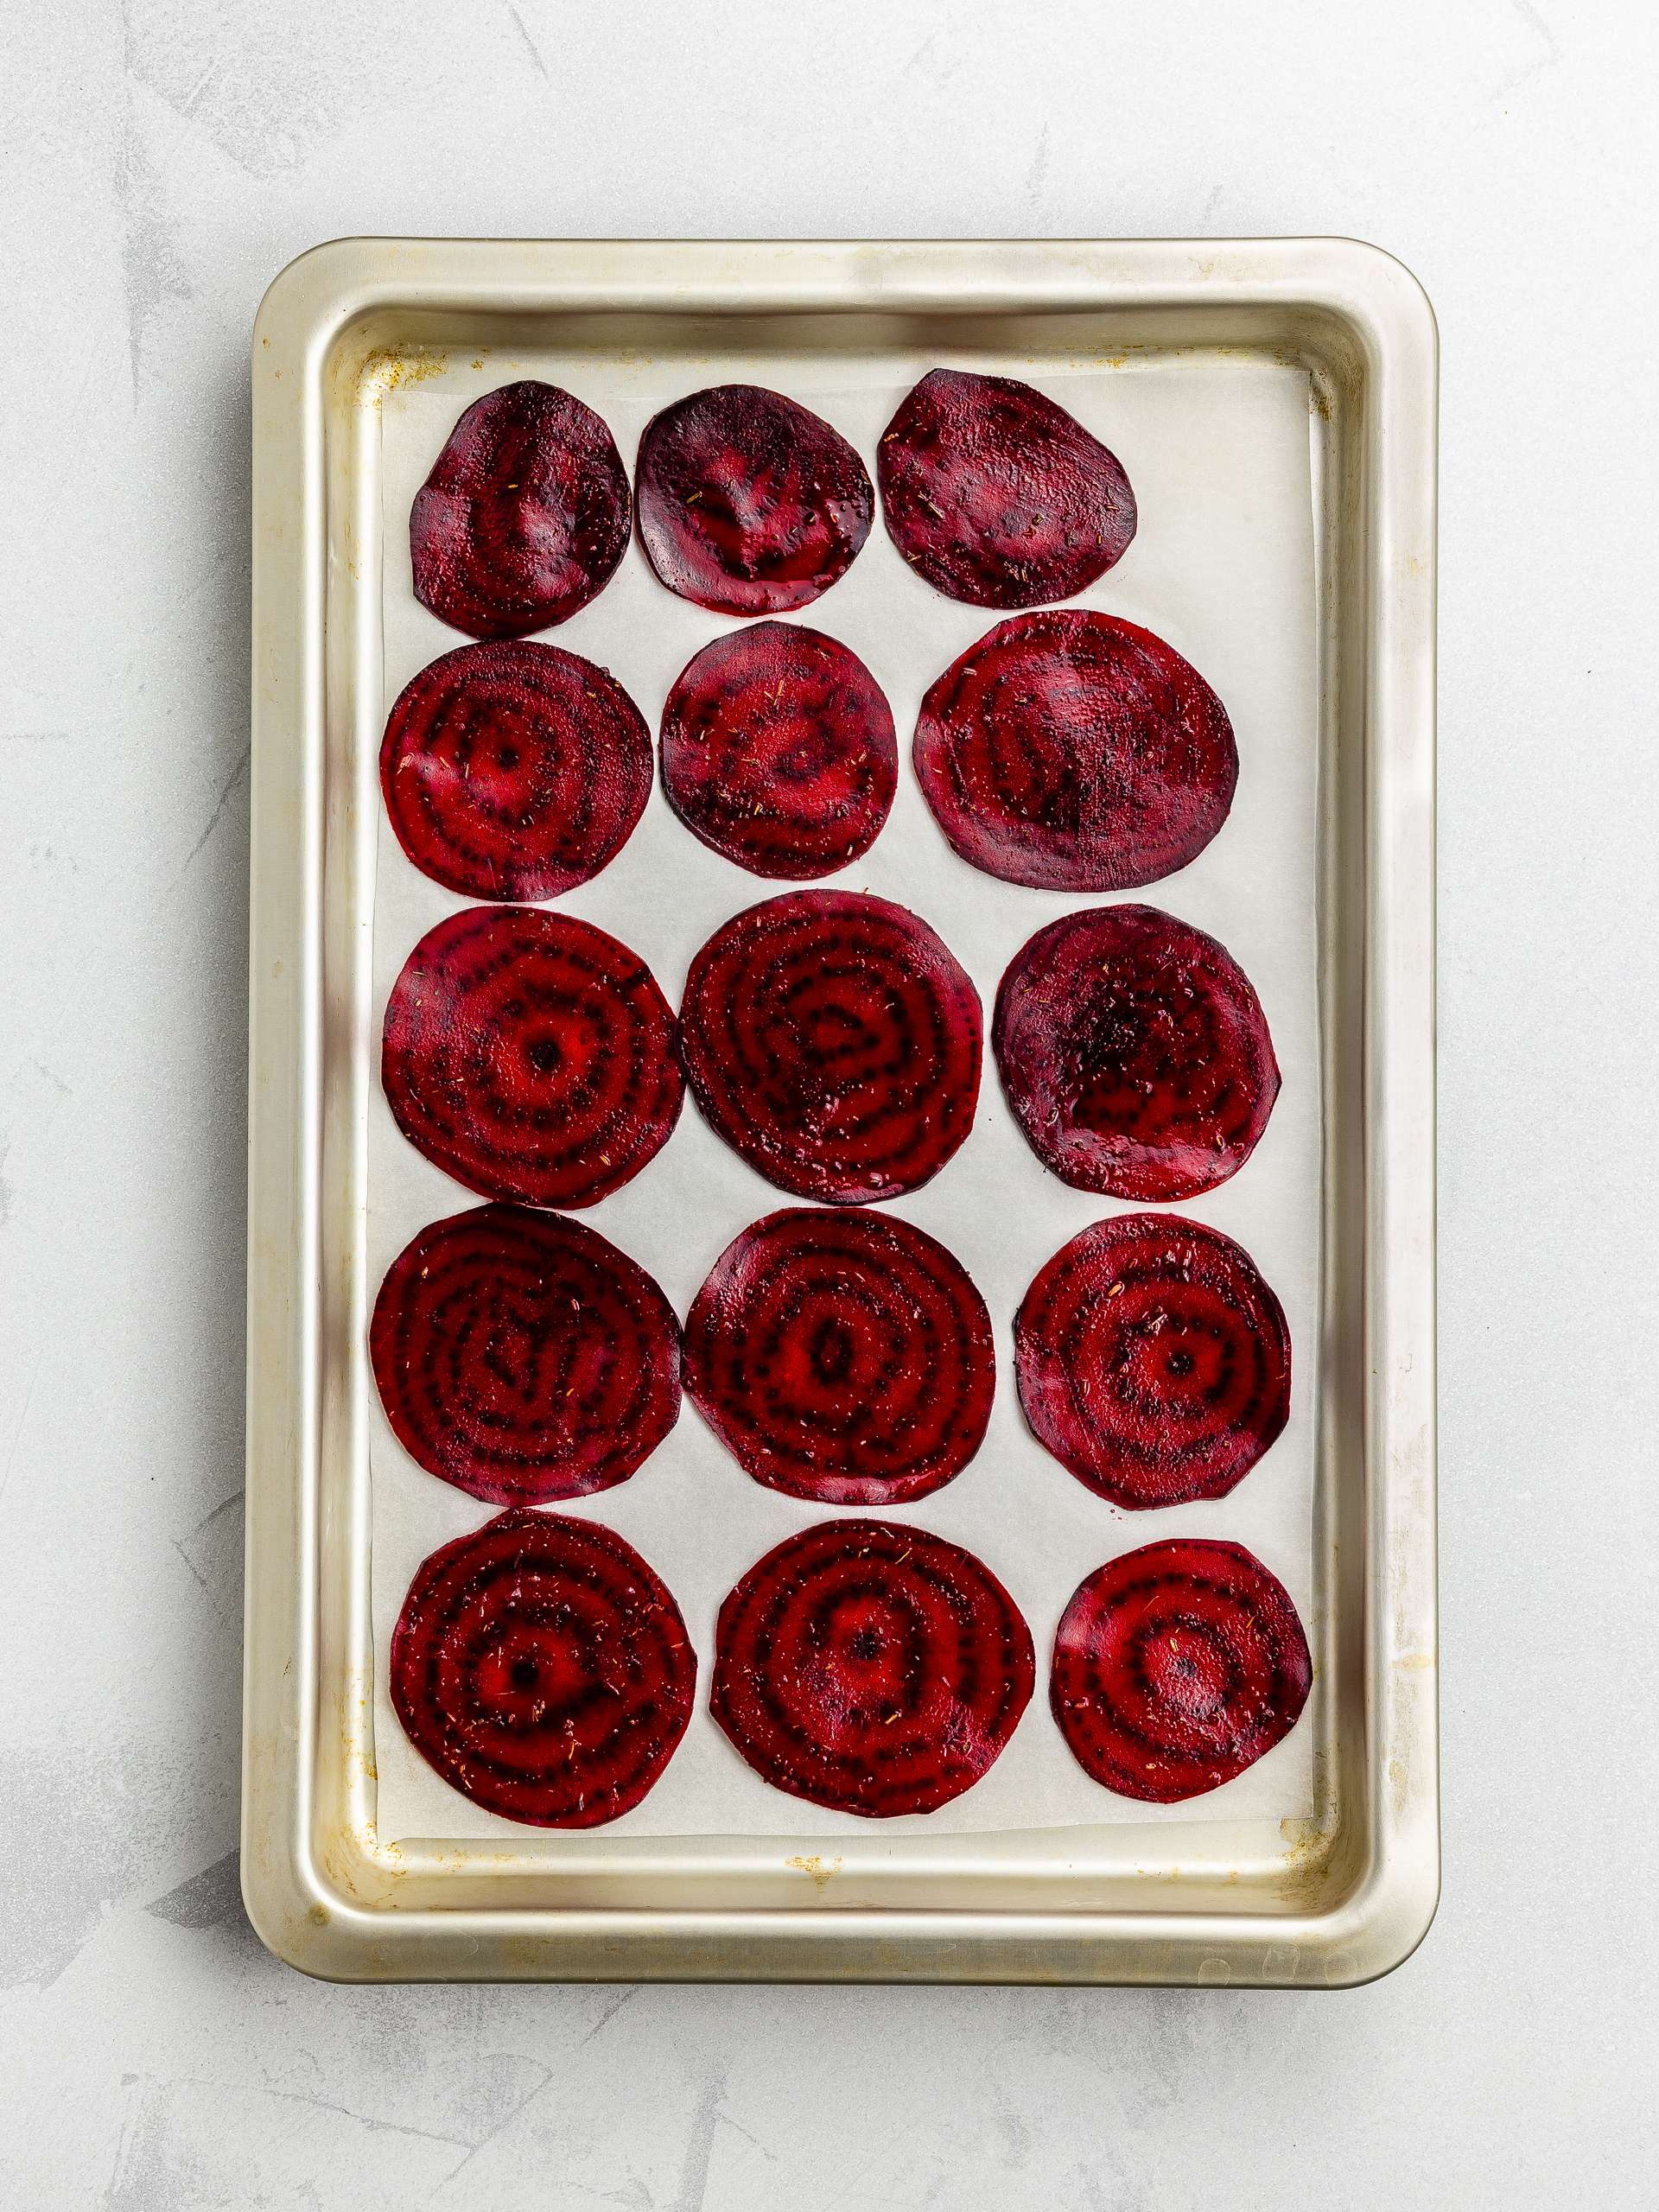 beetroot chips on a baking tray